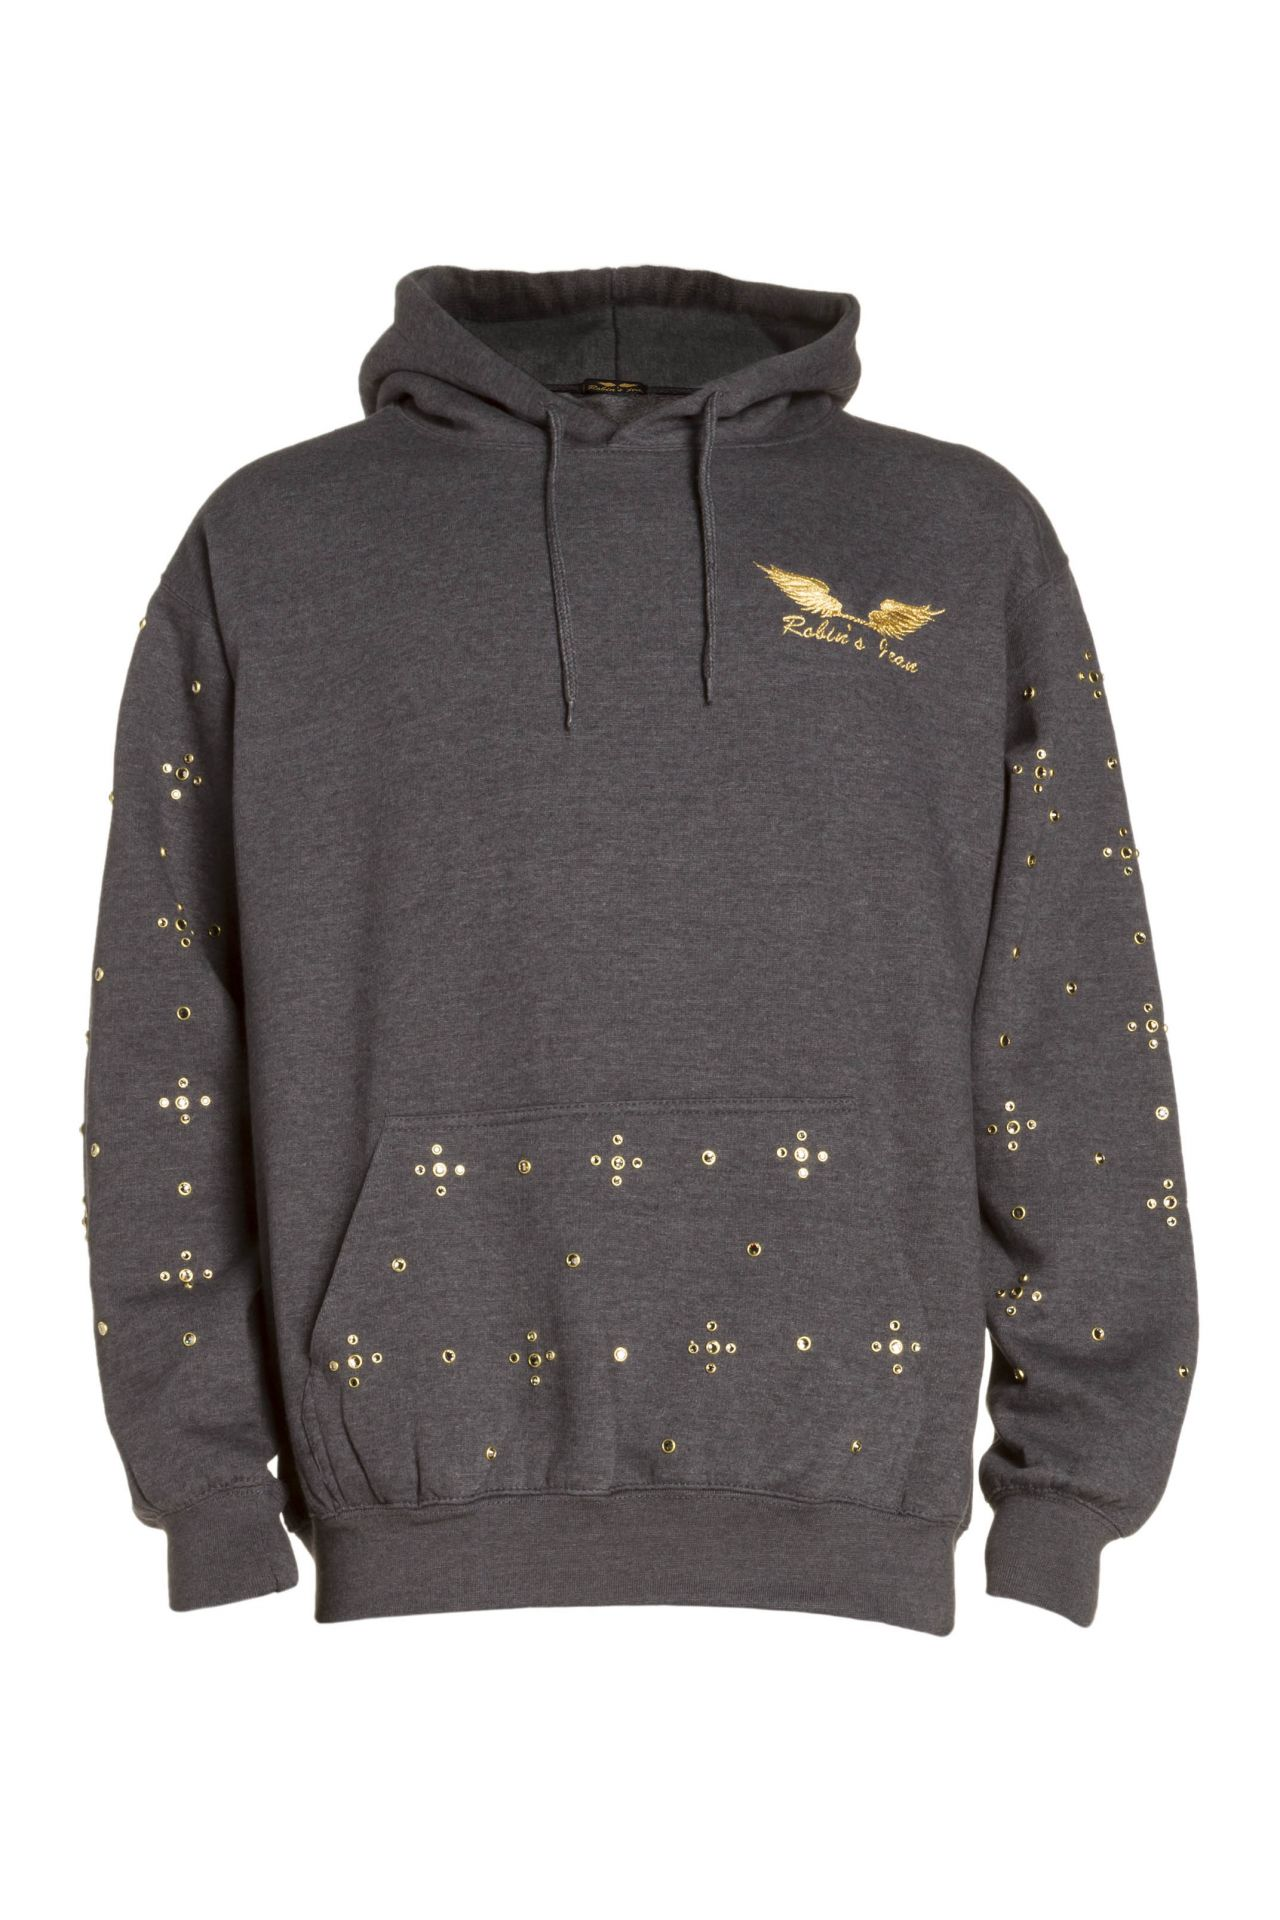 GOLD WINGS PULLOVER HOODIE WITH CRYSTALS IN GREY